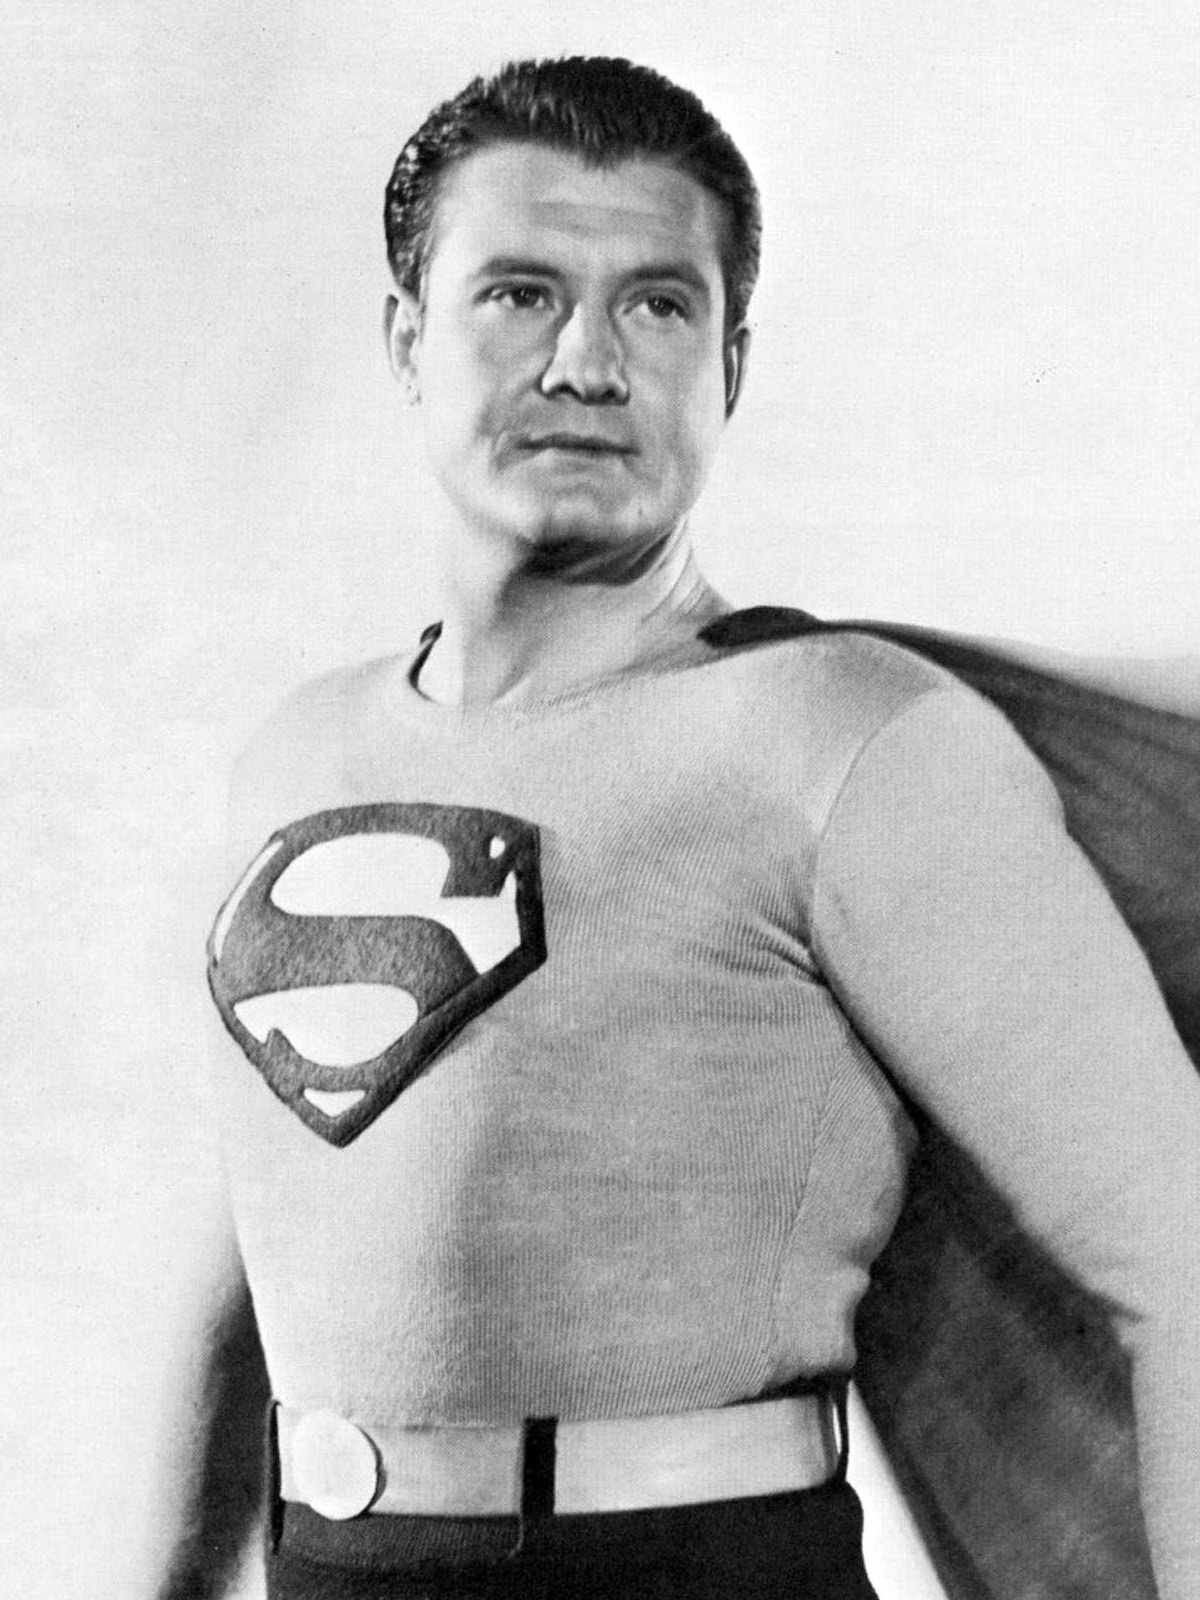 022 - The Suspicious Death of George Reeves - George Reeves exploded into the American mainstream when he donned the red cape and blue tights playing Superman on the 1950's television series The Adventures of Superman. Almost instantly he became synonymous with the superhero as well as his alter ego, mild mannered Clark Kent. Off the screen, Reeve's life was much more complicated and hardly mild mannered. George had been engaged in a nearly ten year romance with Toni Mannix, wife of MGM executive Eddie Mannix known all around Hollywood was the kind of man whose bad side you didn't want to be on.All of that changed in 1958, when Reeves left his older lover for the younger Leonore Lemmon, a New York socialite known for her fiery temper and enchanting looks. Their relationship was a tumultuous one, with Lemmon described as a heavy drinker with a mean temper and a controlling personality.On the night of June 15th, 1959, George and Lemmon returned home late and went to bed. Several late night visitors came knocking around 1am, and an annoyed George expressed his disinterest in their company. He shared a nightcap with the group before going back upstairs to get some sleep. Moments later, a gunshot rang out and the Superman actor lay dead in his bed of an apparent self-inflicted gunshot wound. For the LAPD, it was an open and shut case of suicide, but the evidence would suggest a much more sinister event had taken place.Listen Now | YouTube Video